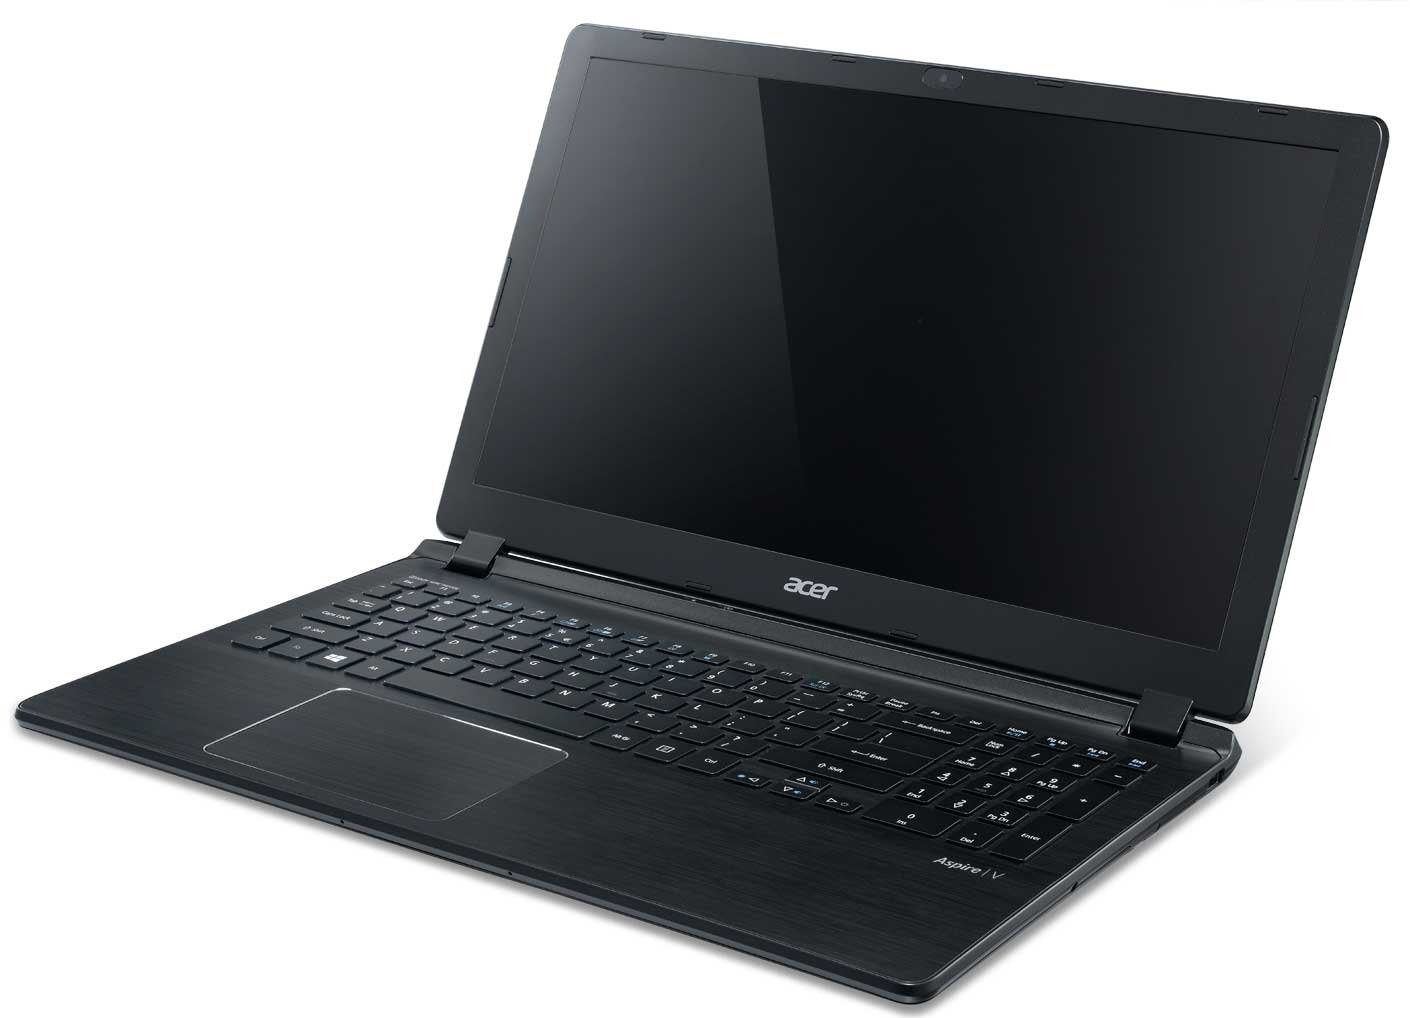 ACER ASPIRE V5-552 AMD GRAPHICS DRIVER FOR WINDOWS